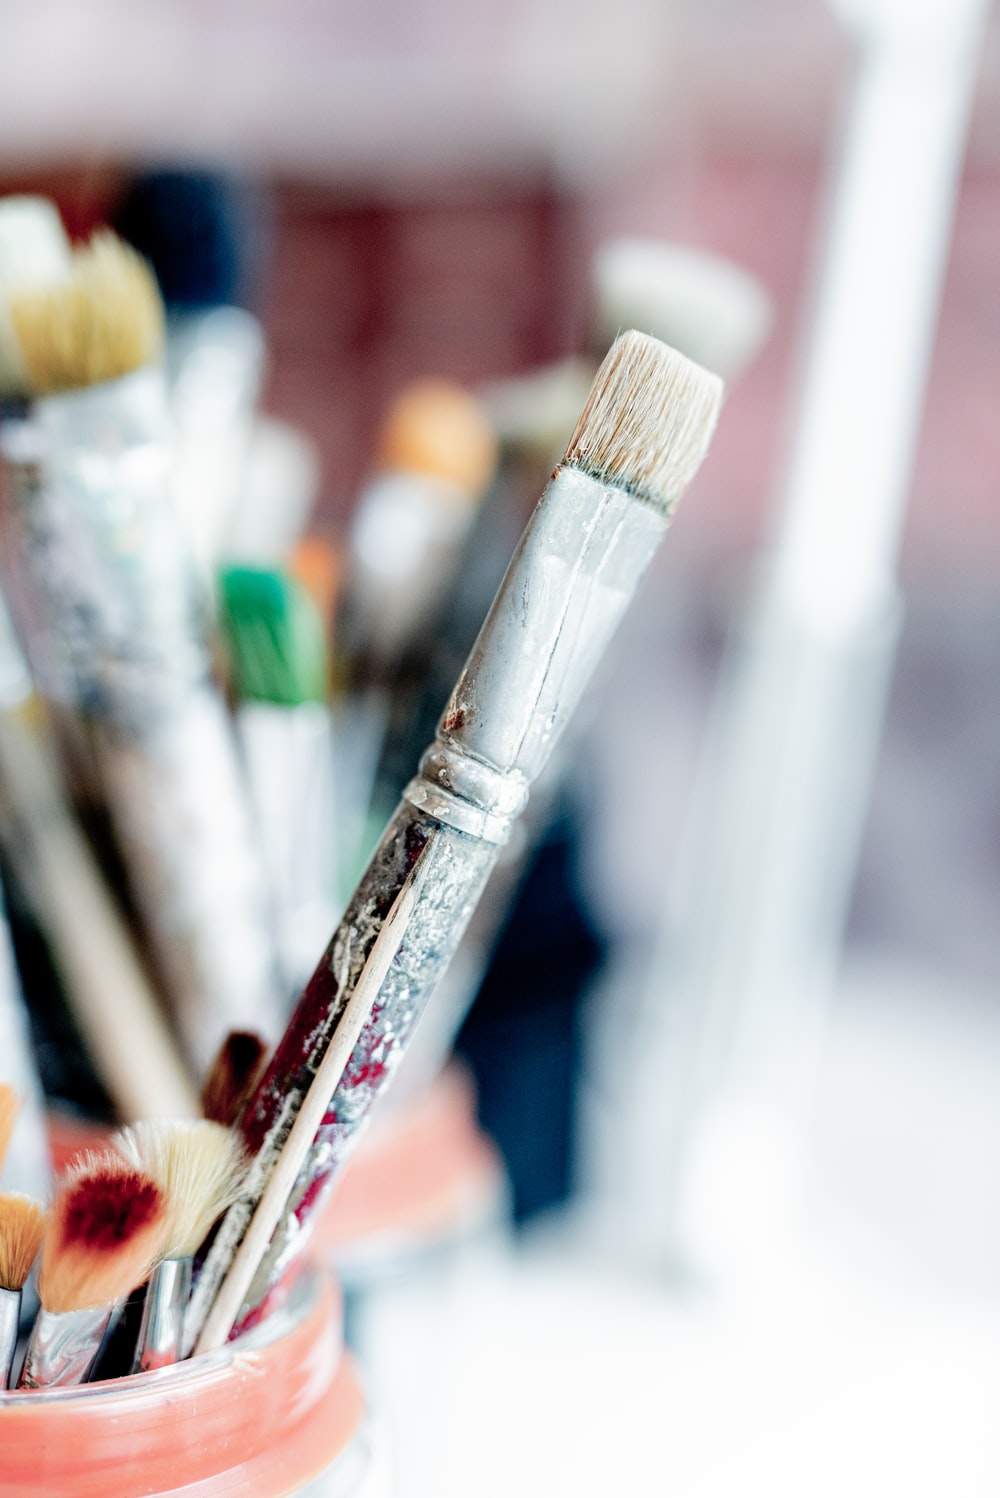 white and brown paint brush